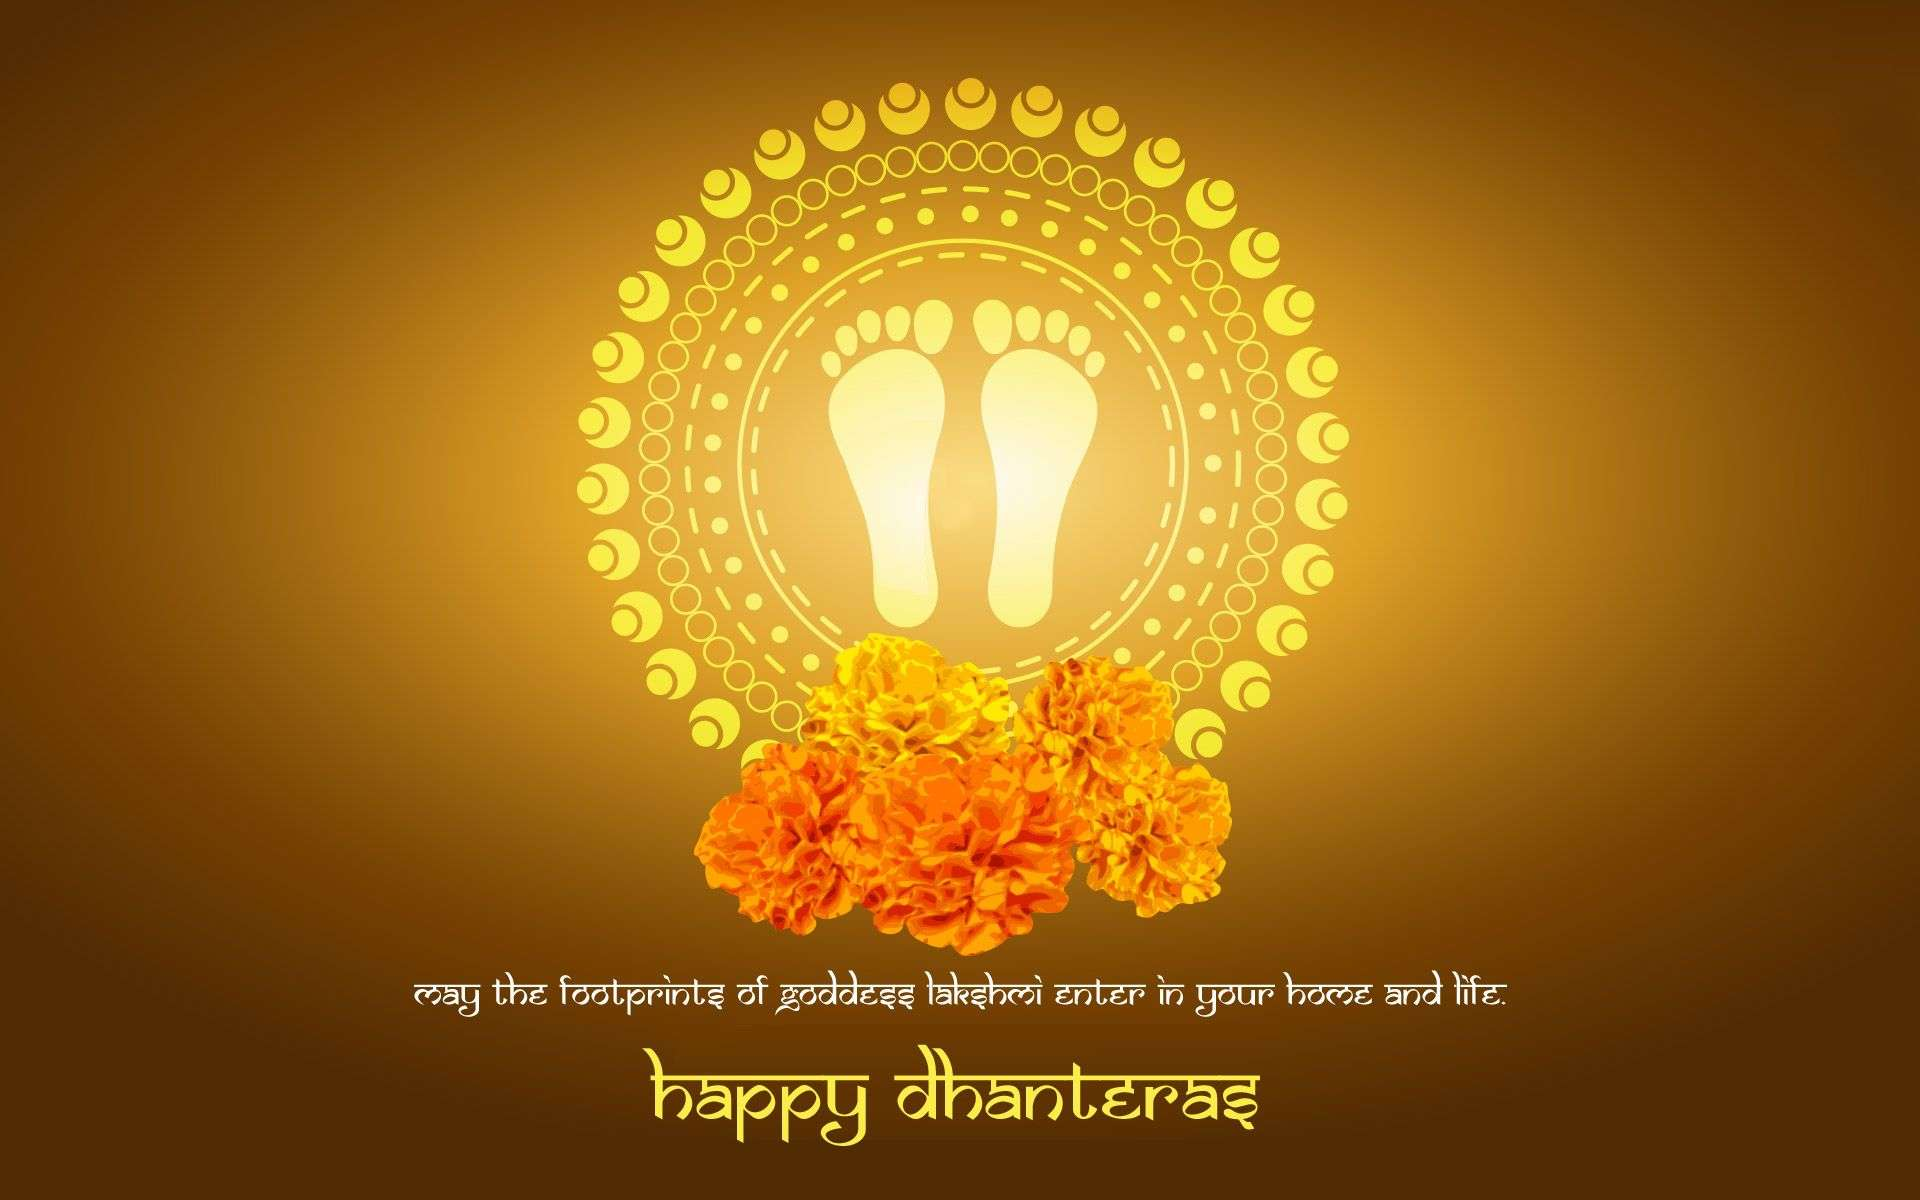 Happy Dhanteras 2020: Images, Quotes, Wishes, Messages, Cards, Greetings, Pictures and GIFs